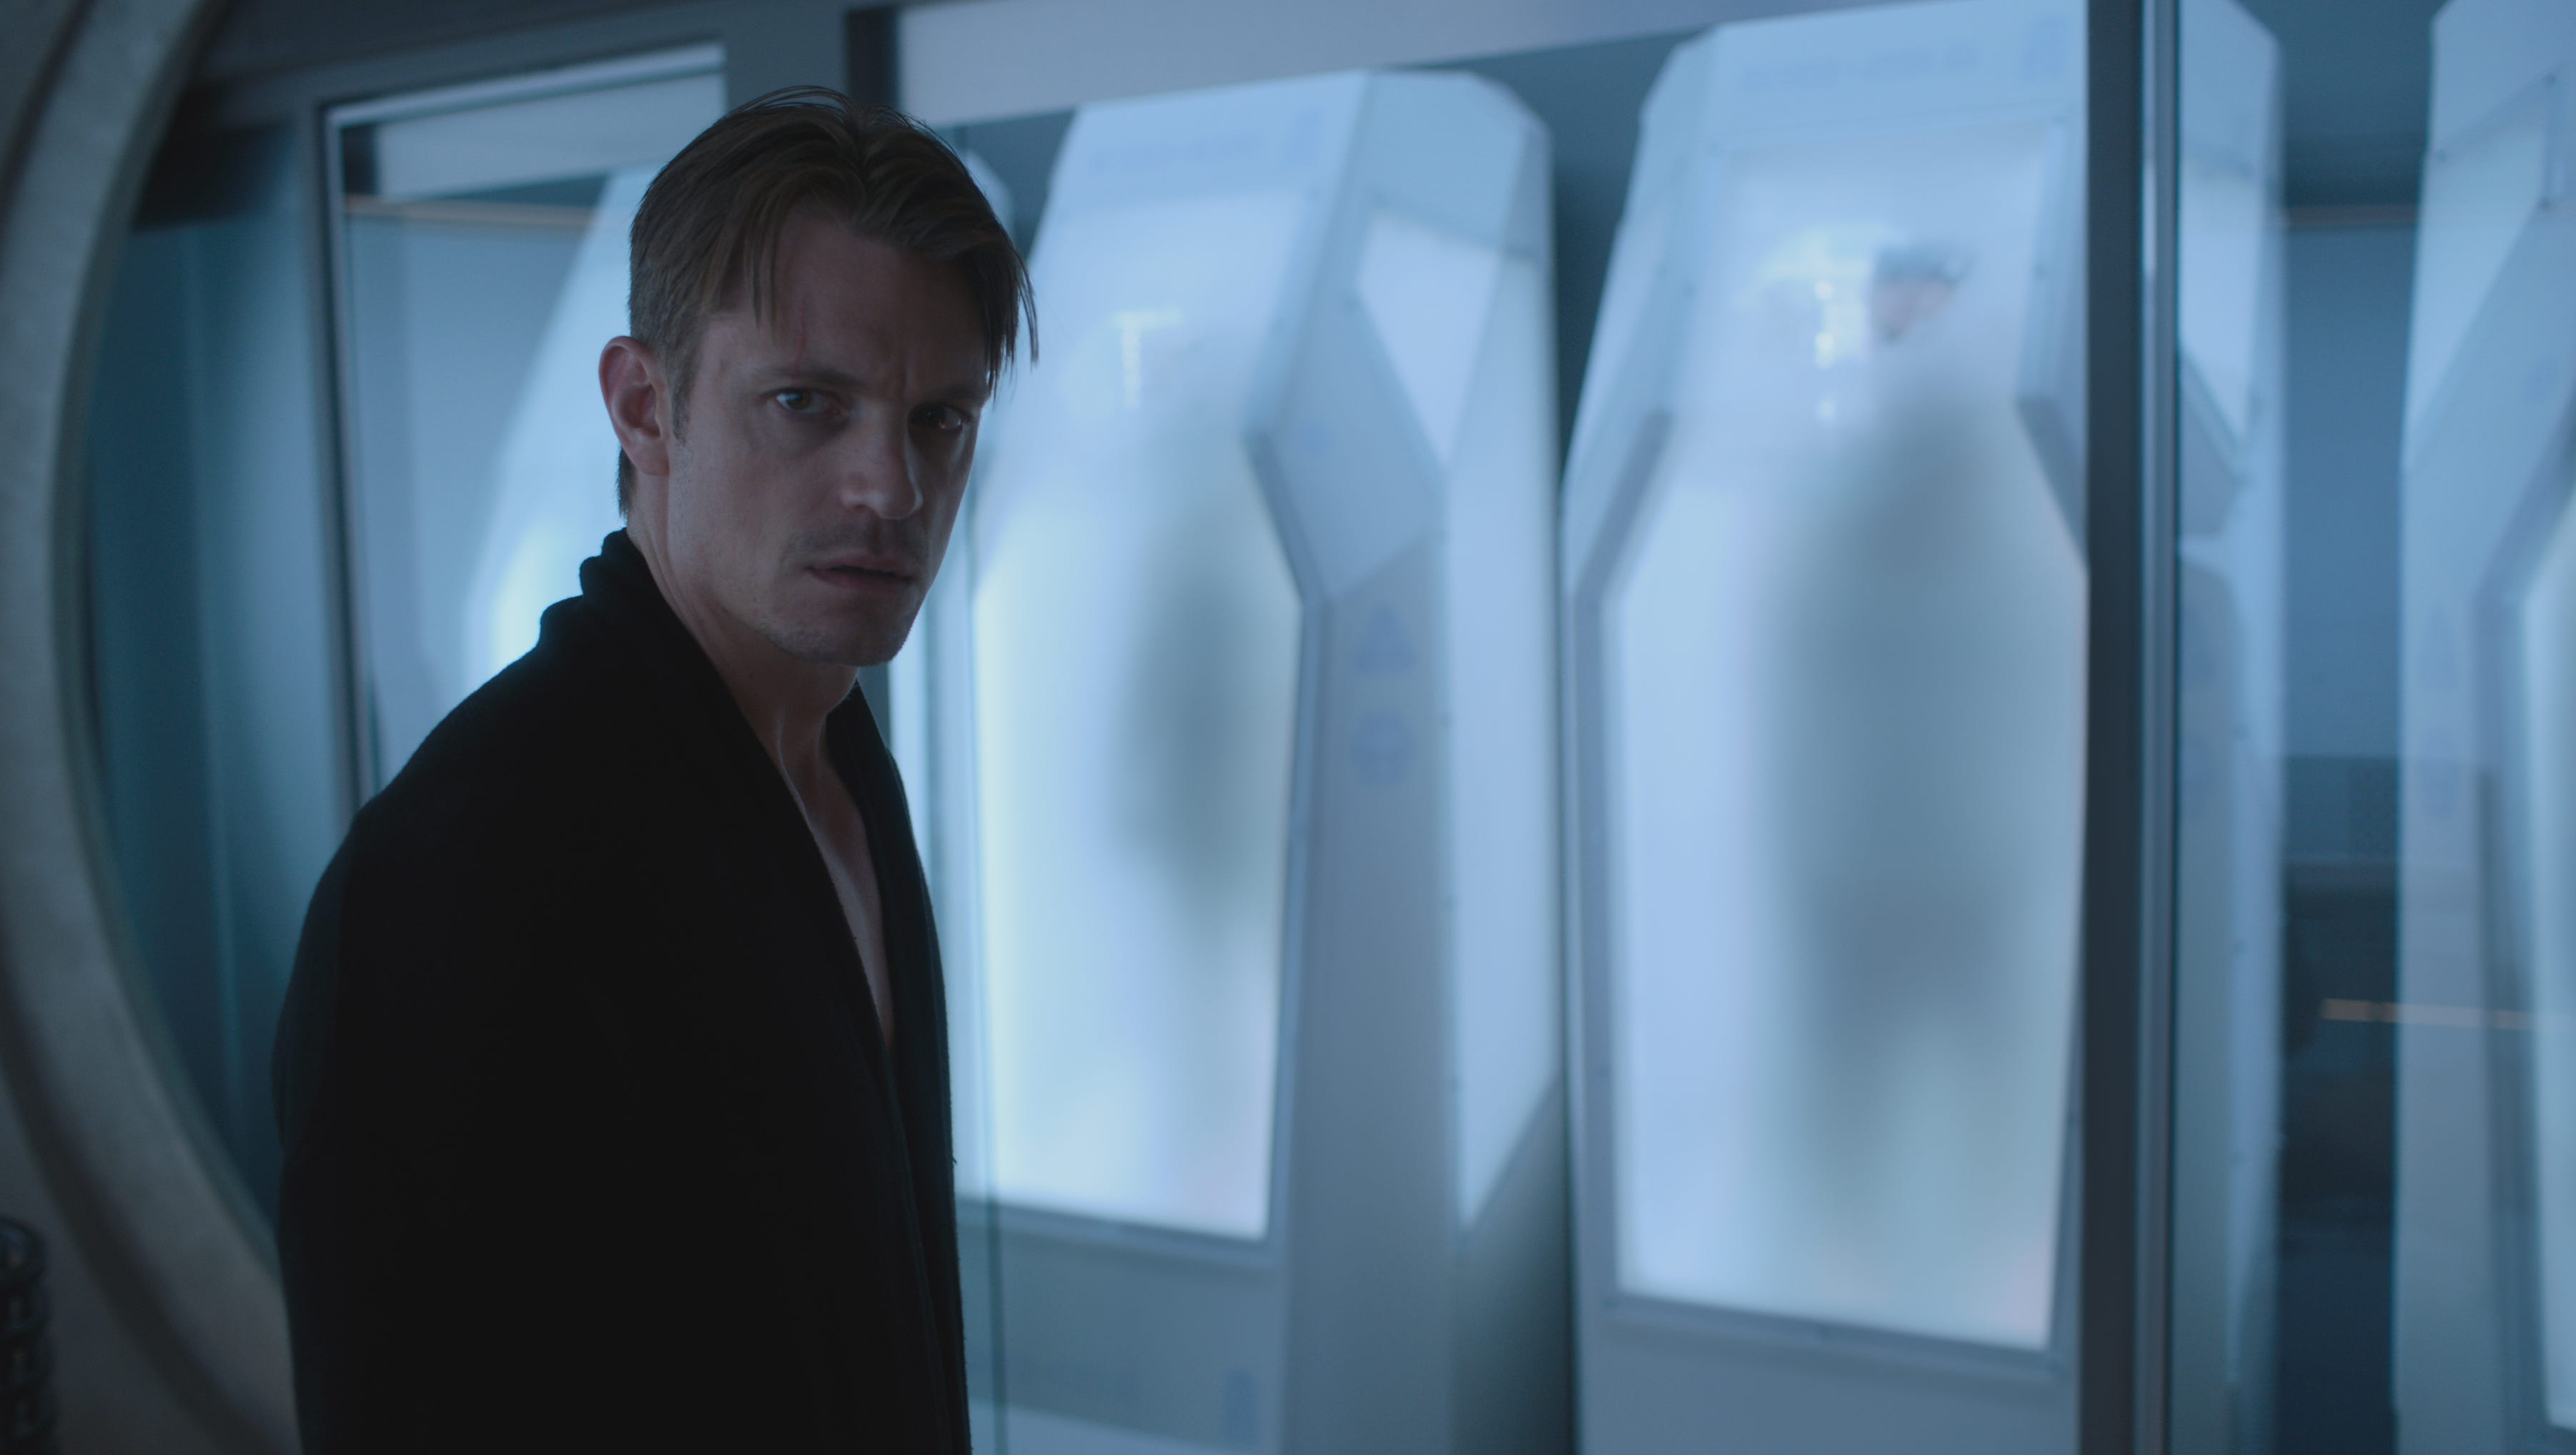 Altered Carbon Male Frontal violence, nudity reflect netflix series 'altered carbon's